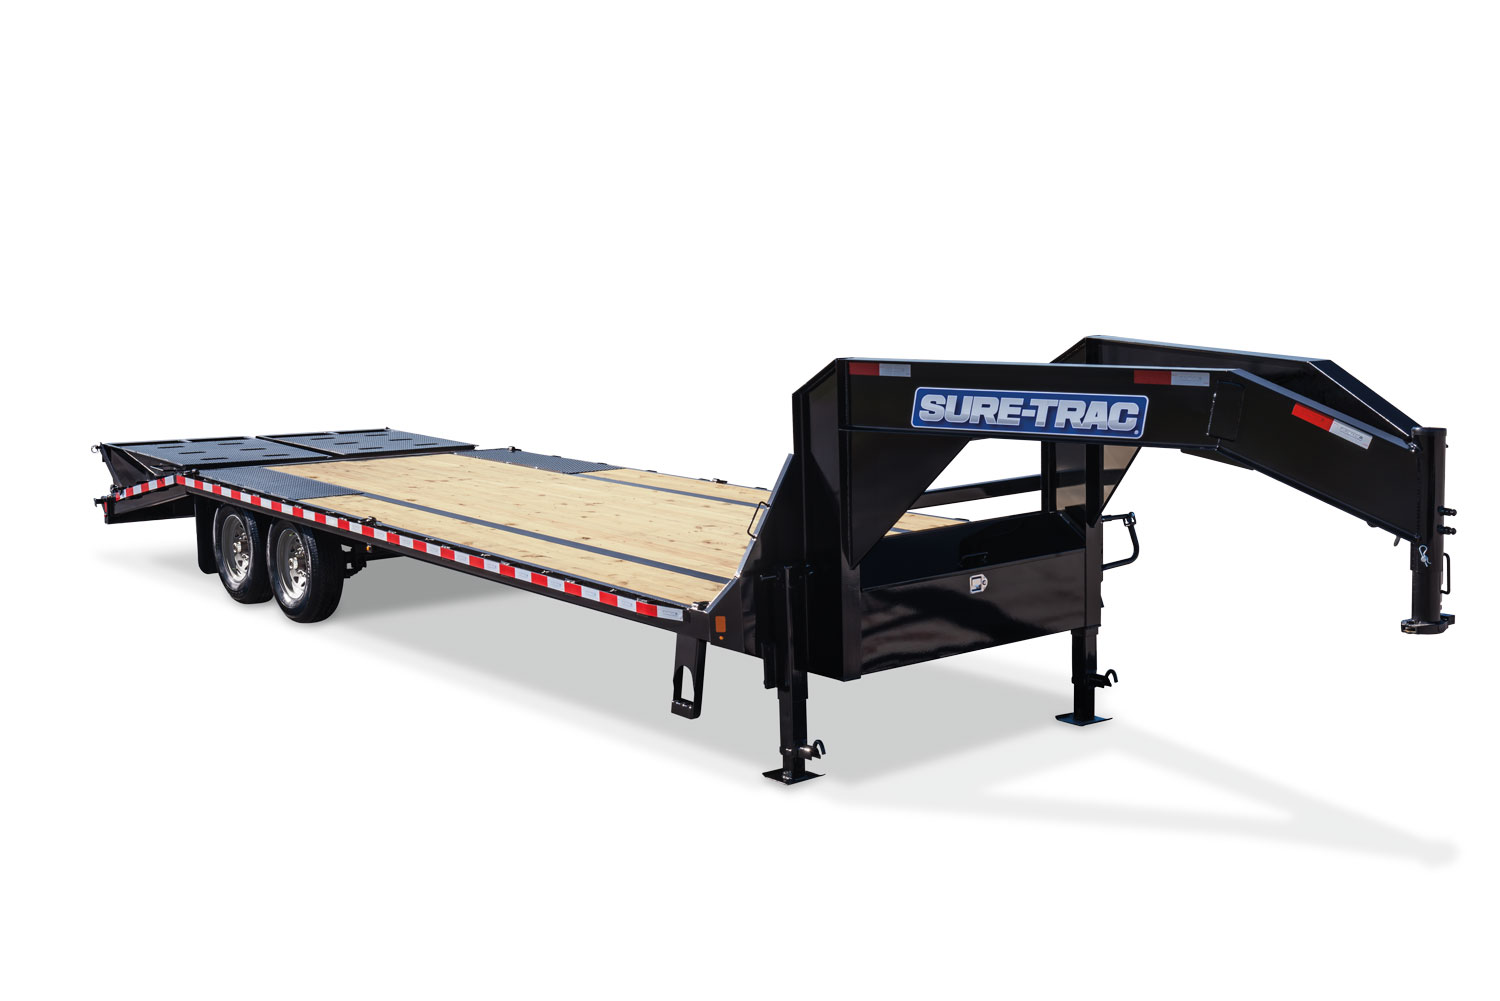 2020 Sure-Trac 8.5x30+10 LowPro Hyd Deckover Tandem GN